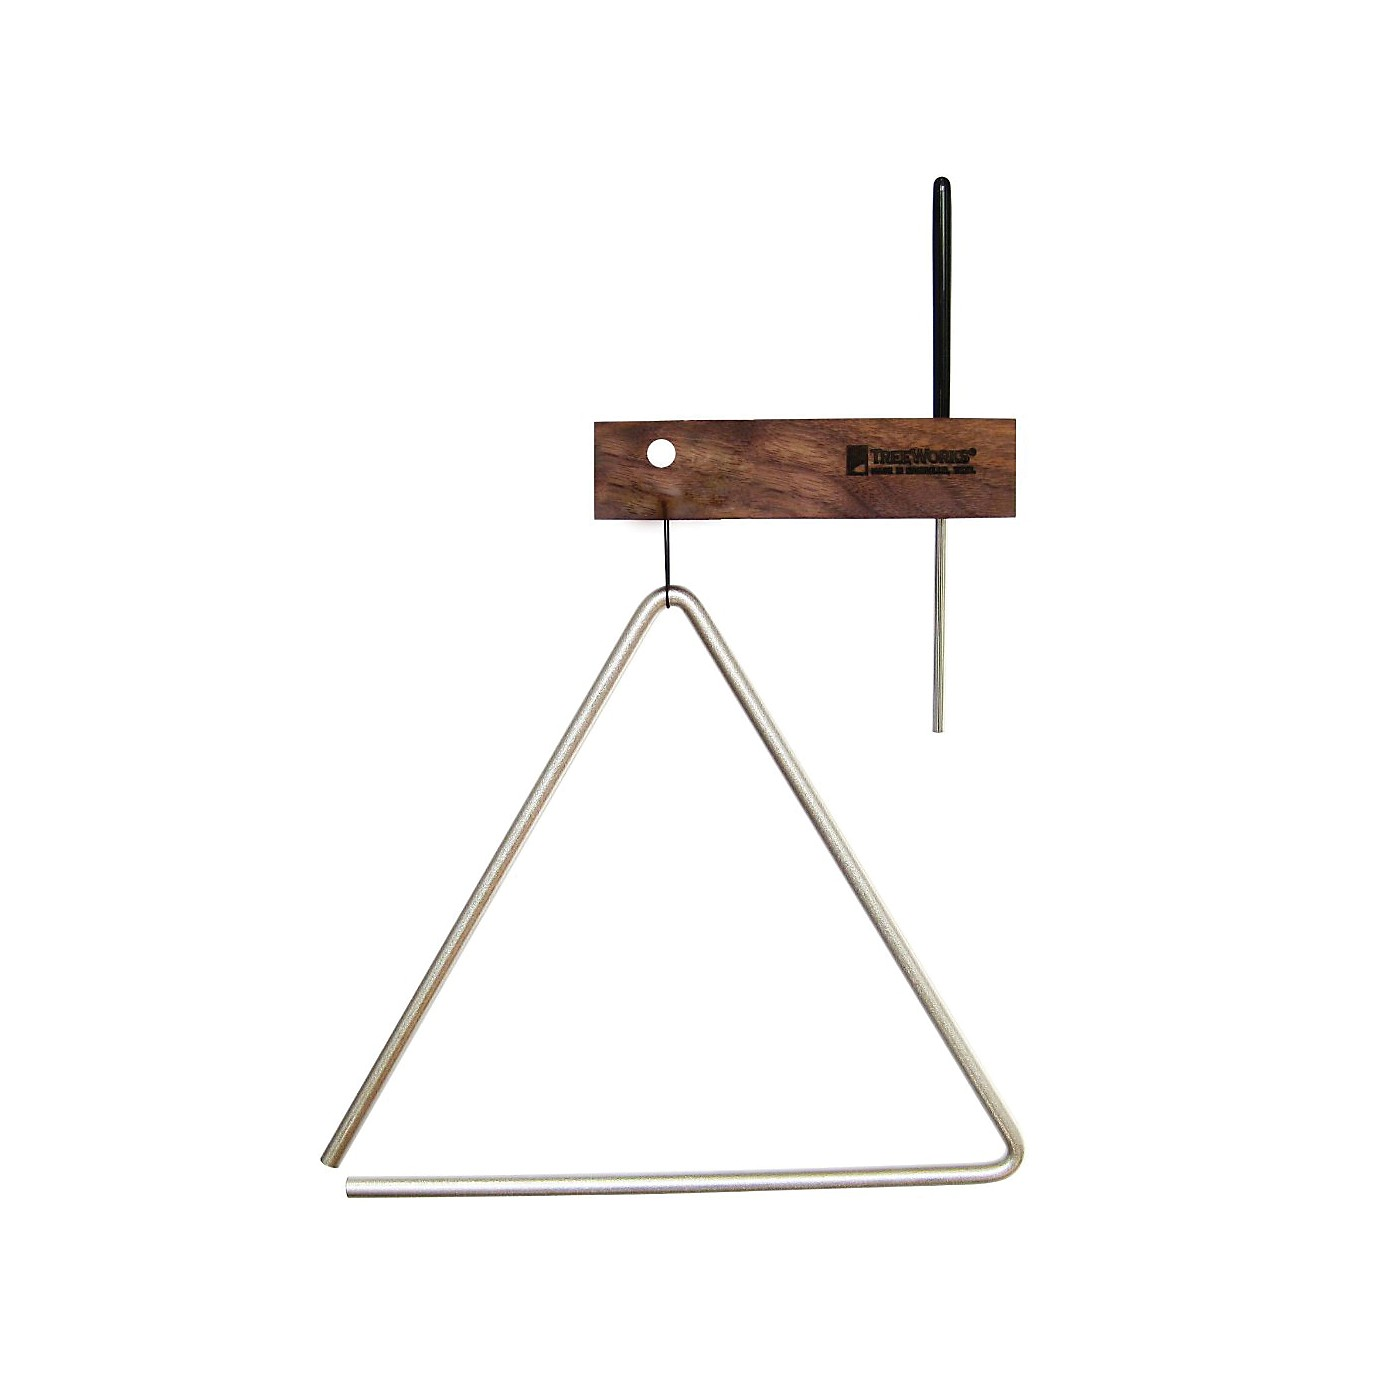 Treeworks Studio Grade Triangle with Beater & Holder thumbnail